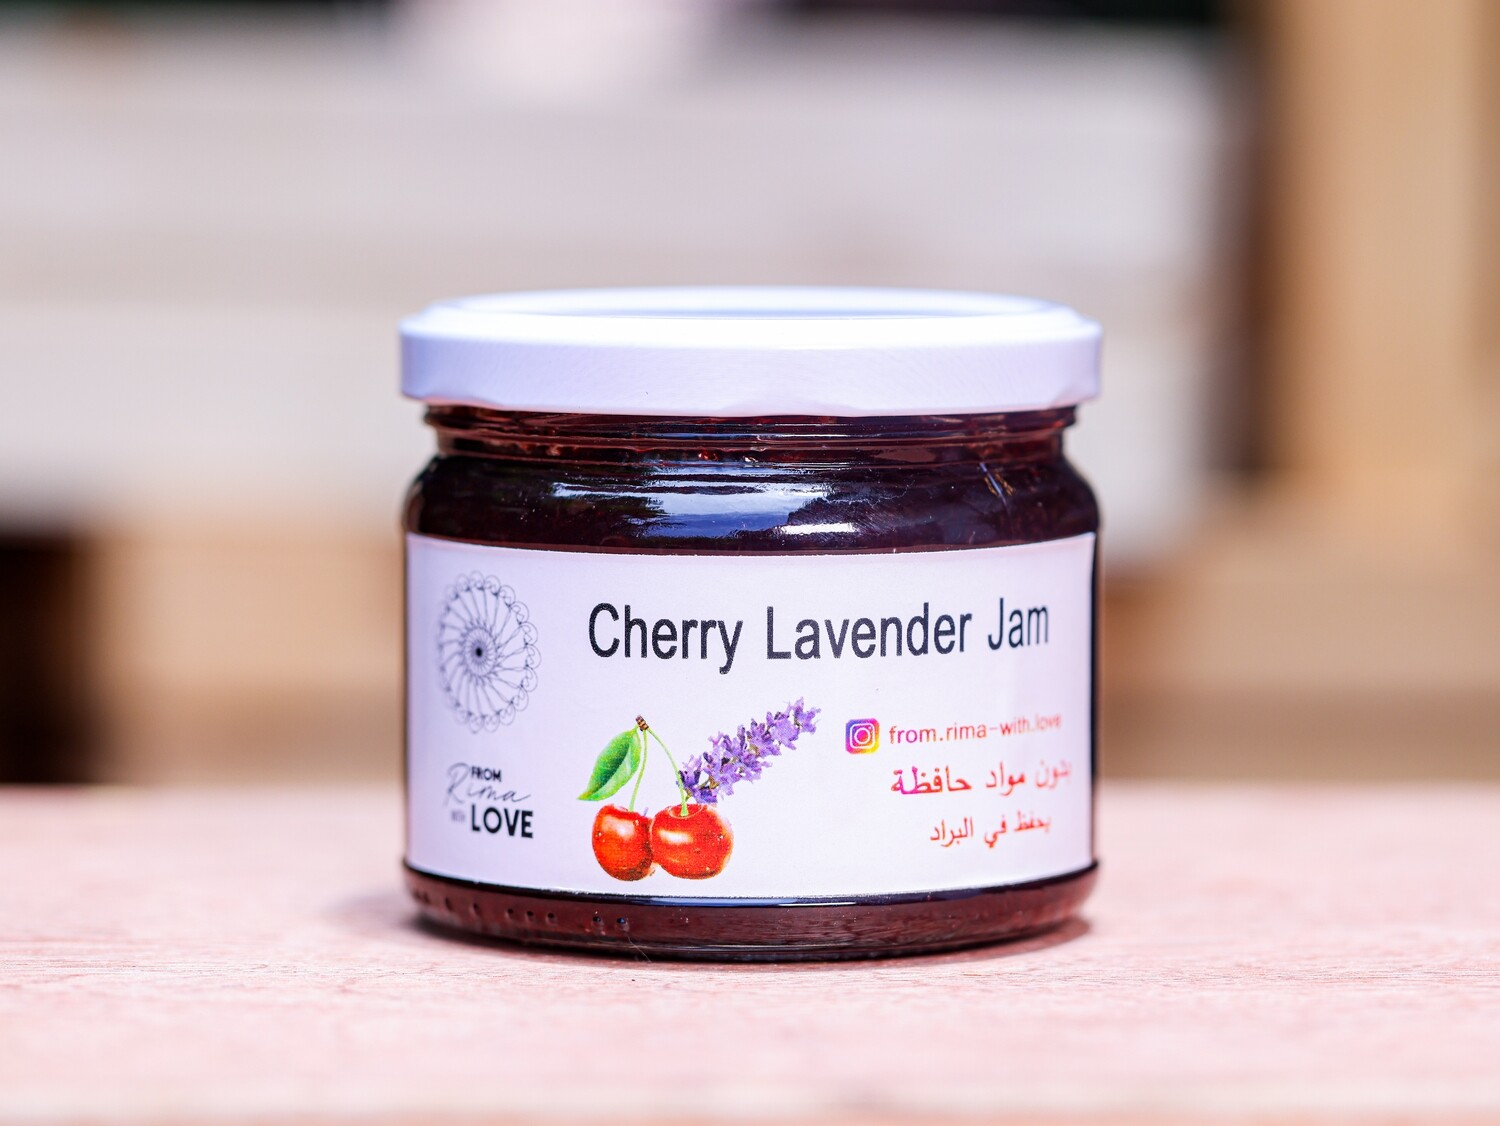 Cherry Lavender Jam (Jar) - From Rima with Love